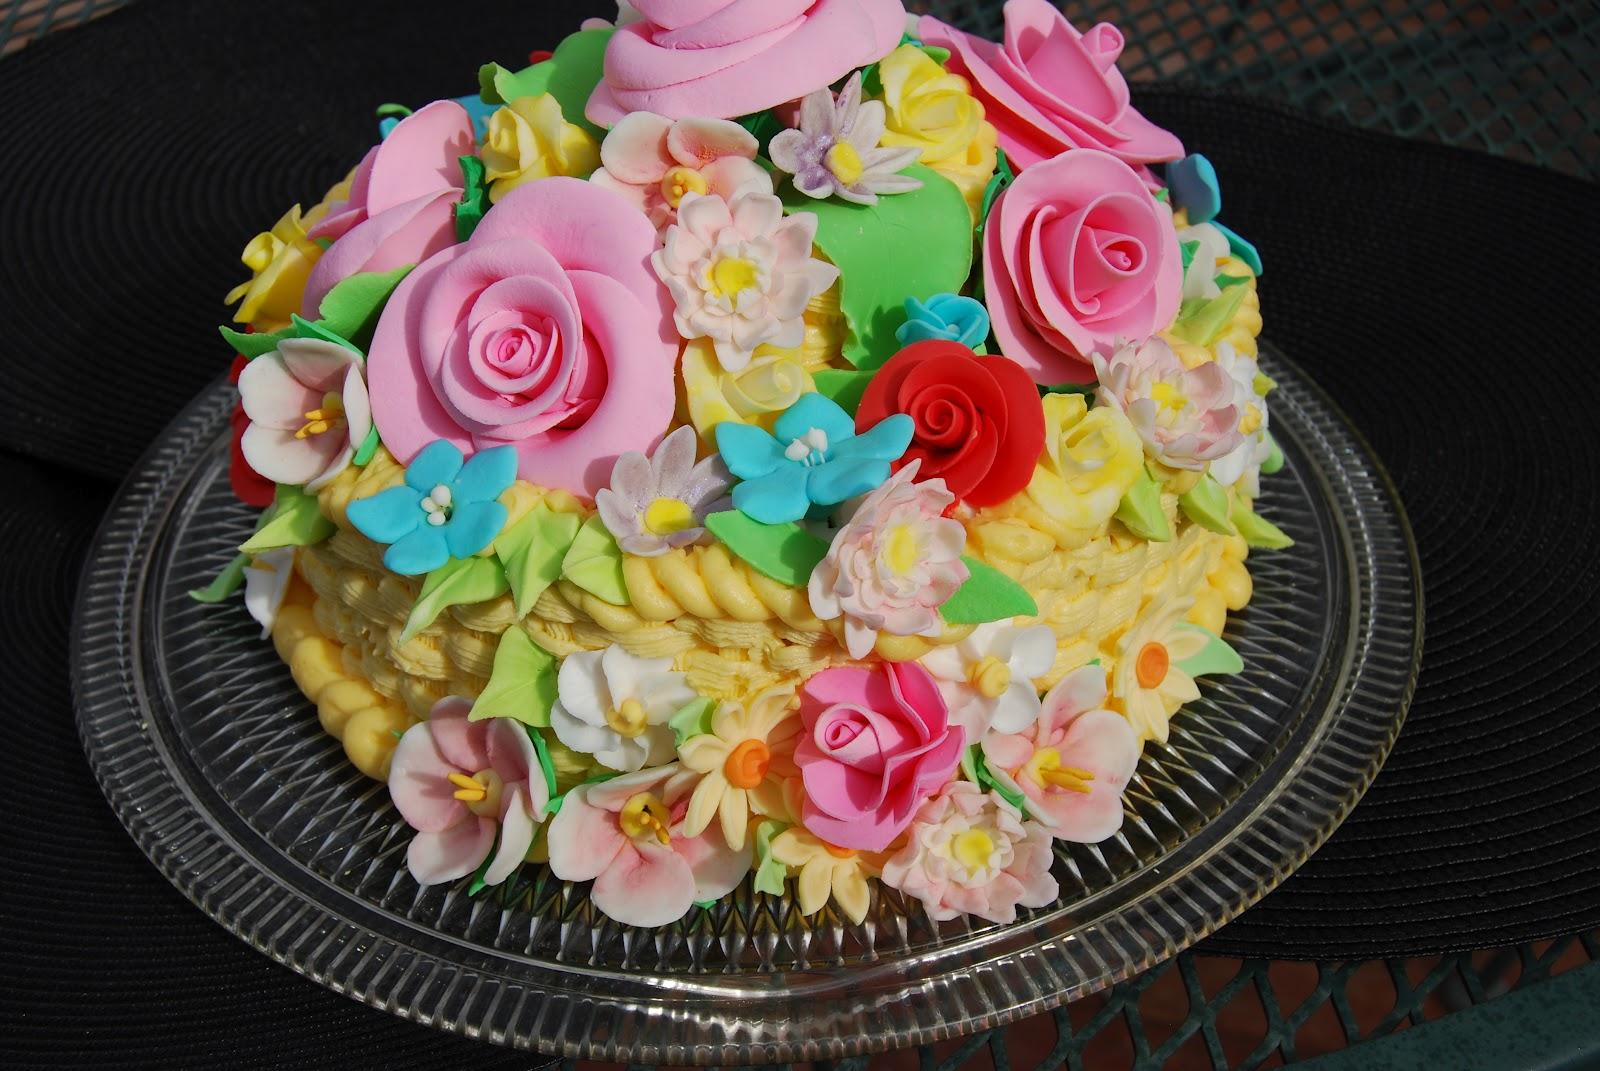 How To Make A Basket Of Flowers Cake : Gamma susie s this n that mother day basket of flowers cake